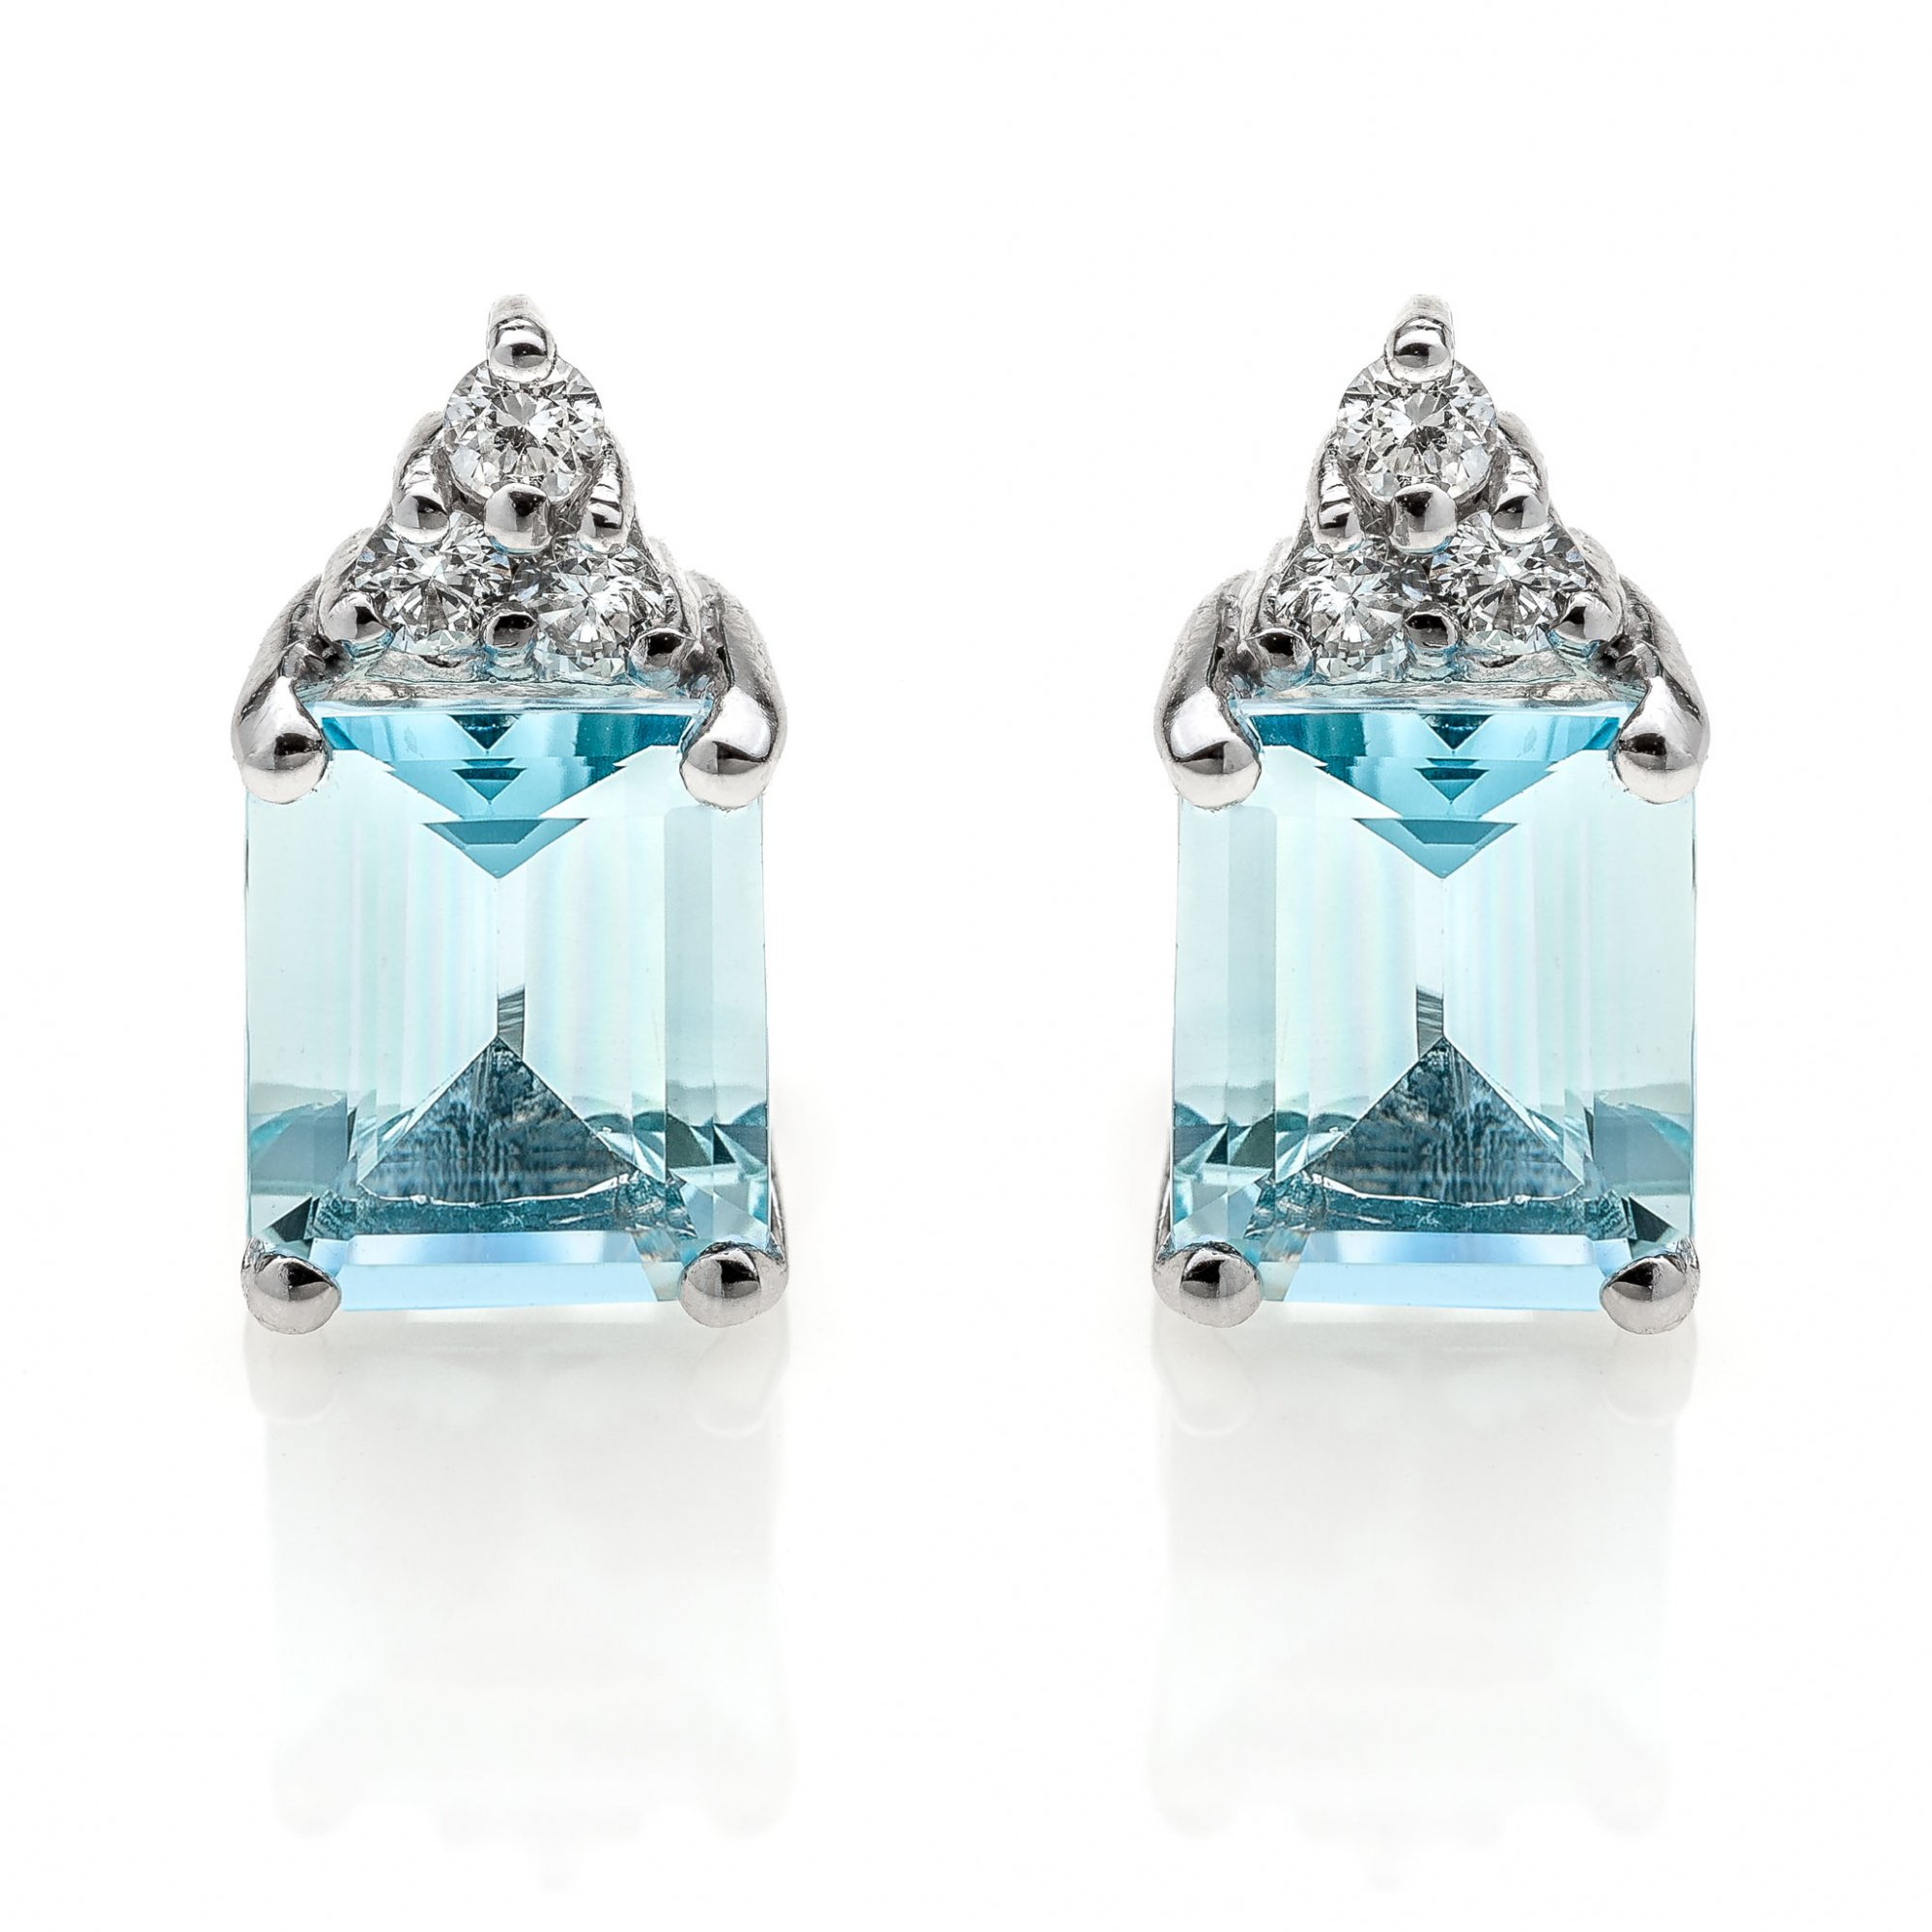 18 KT white gold earrings with natural aquamarine and natural round brilliant cut diamonds